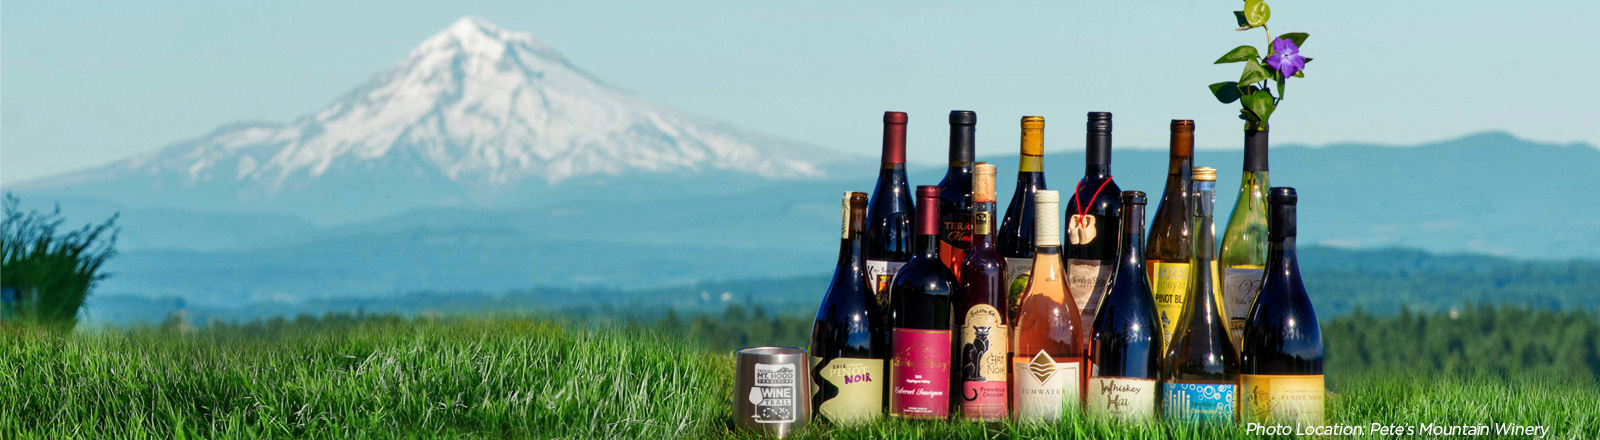 Collection of wine bottles from Mt. Hood Territory wineries staged outdoors on grass with snow covered Mt. Hood in background